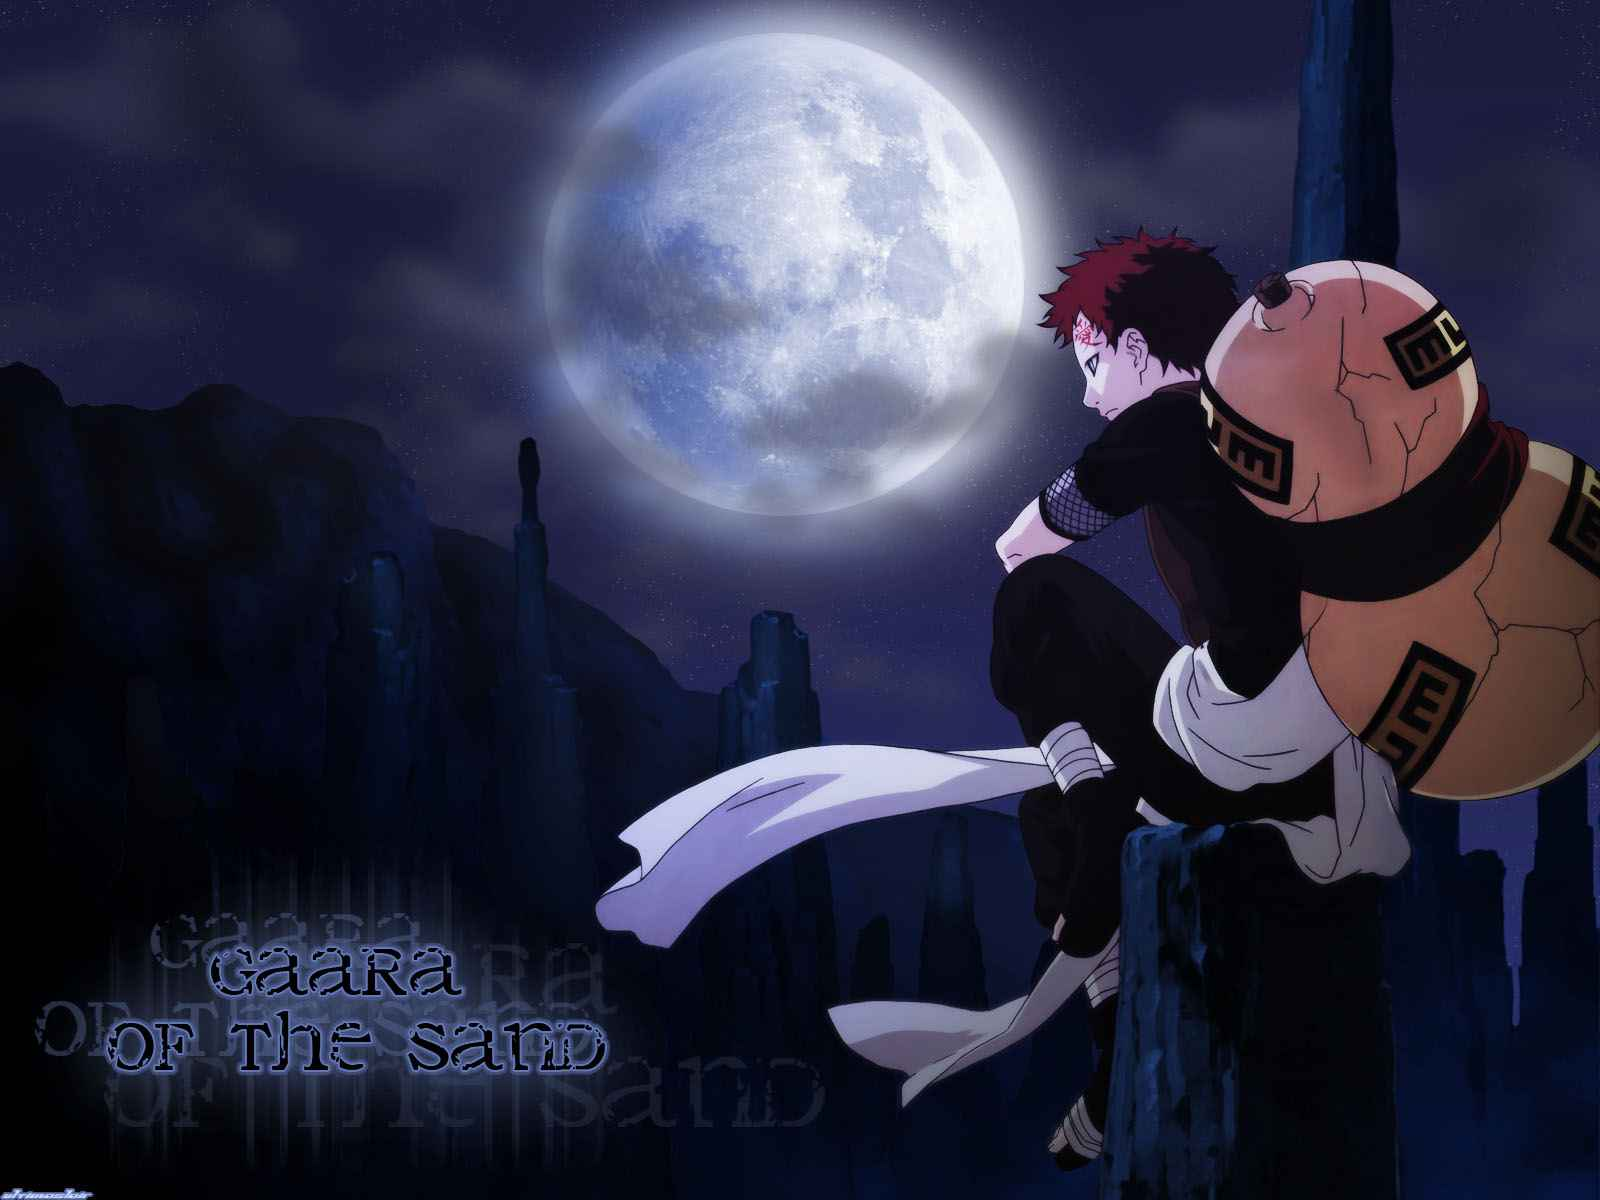 naruto and gaara wallpaper - photo #5